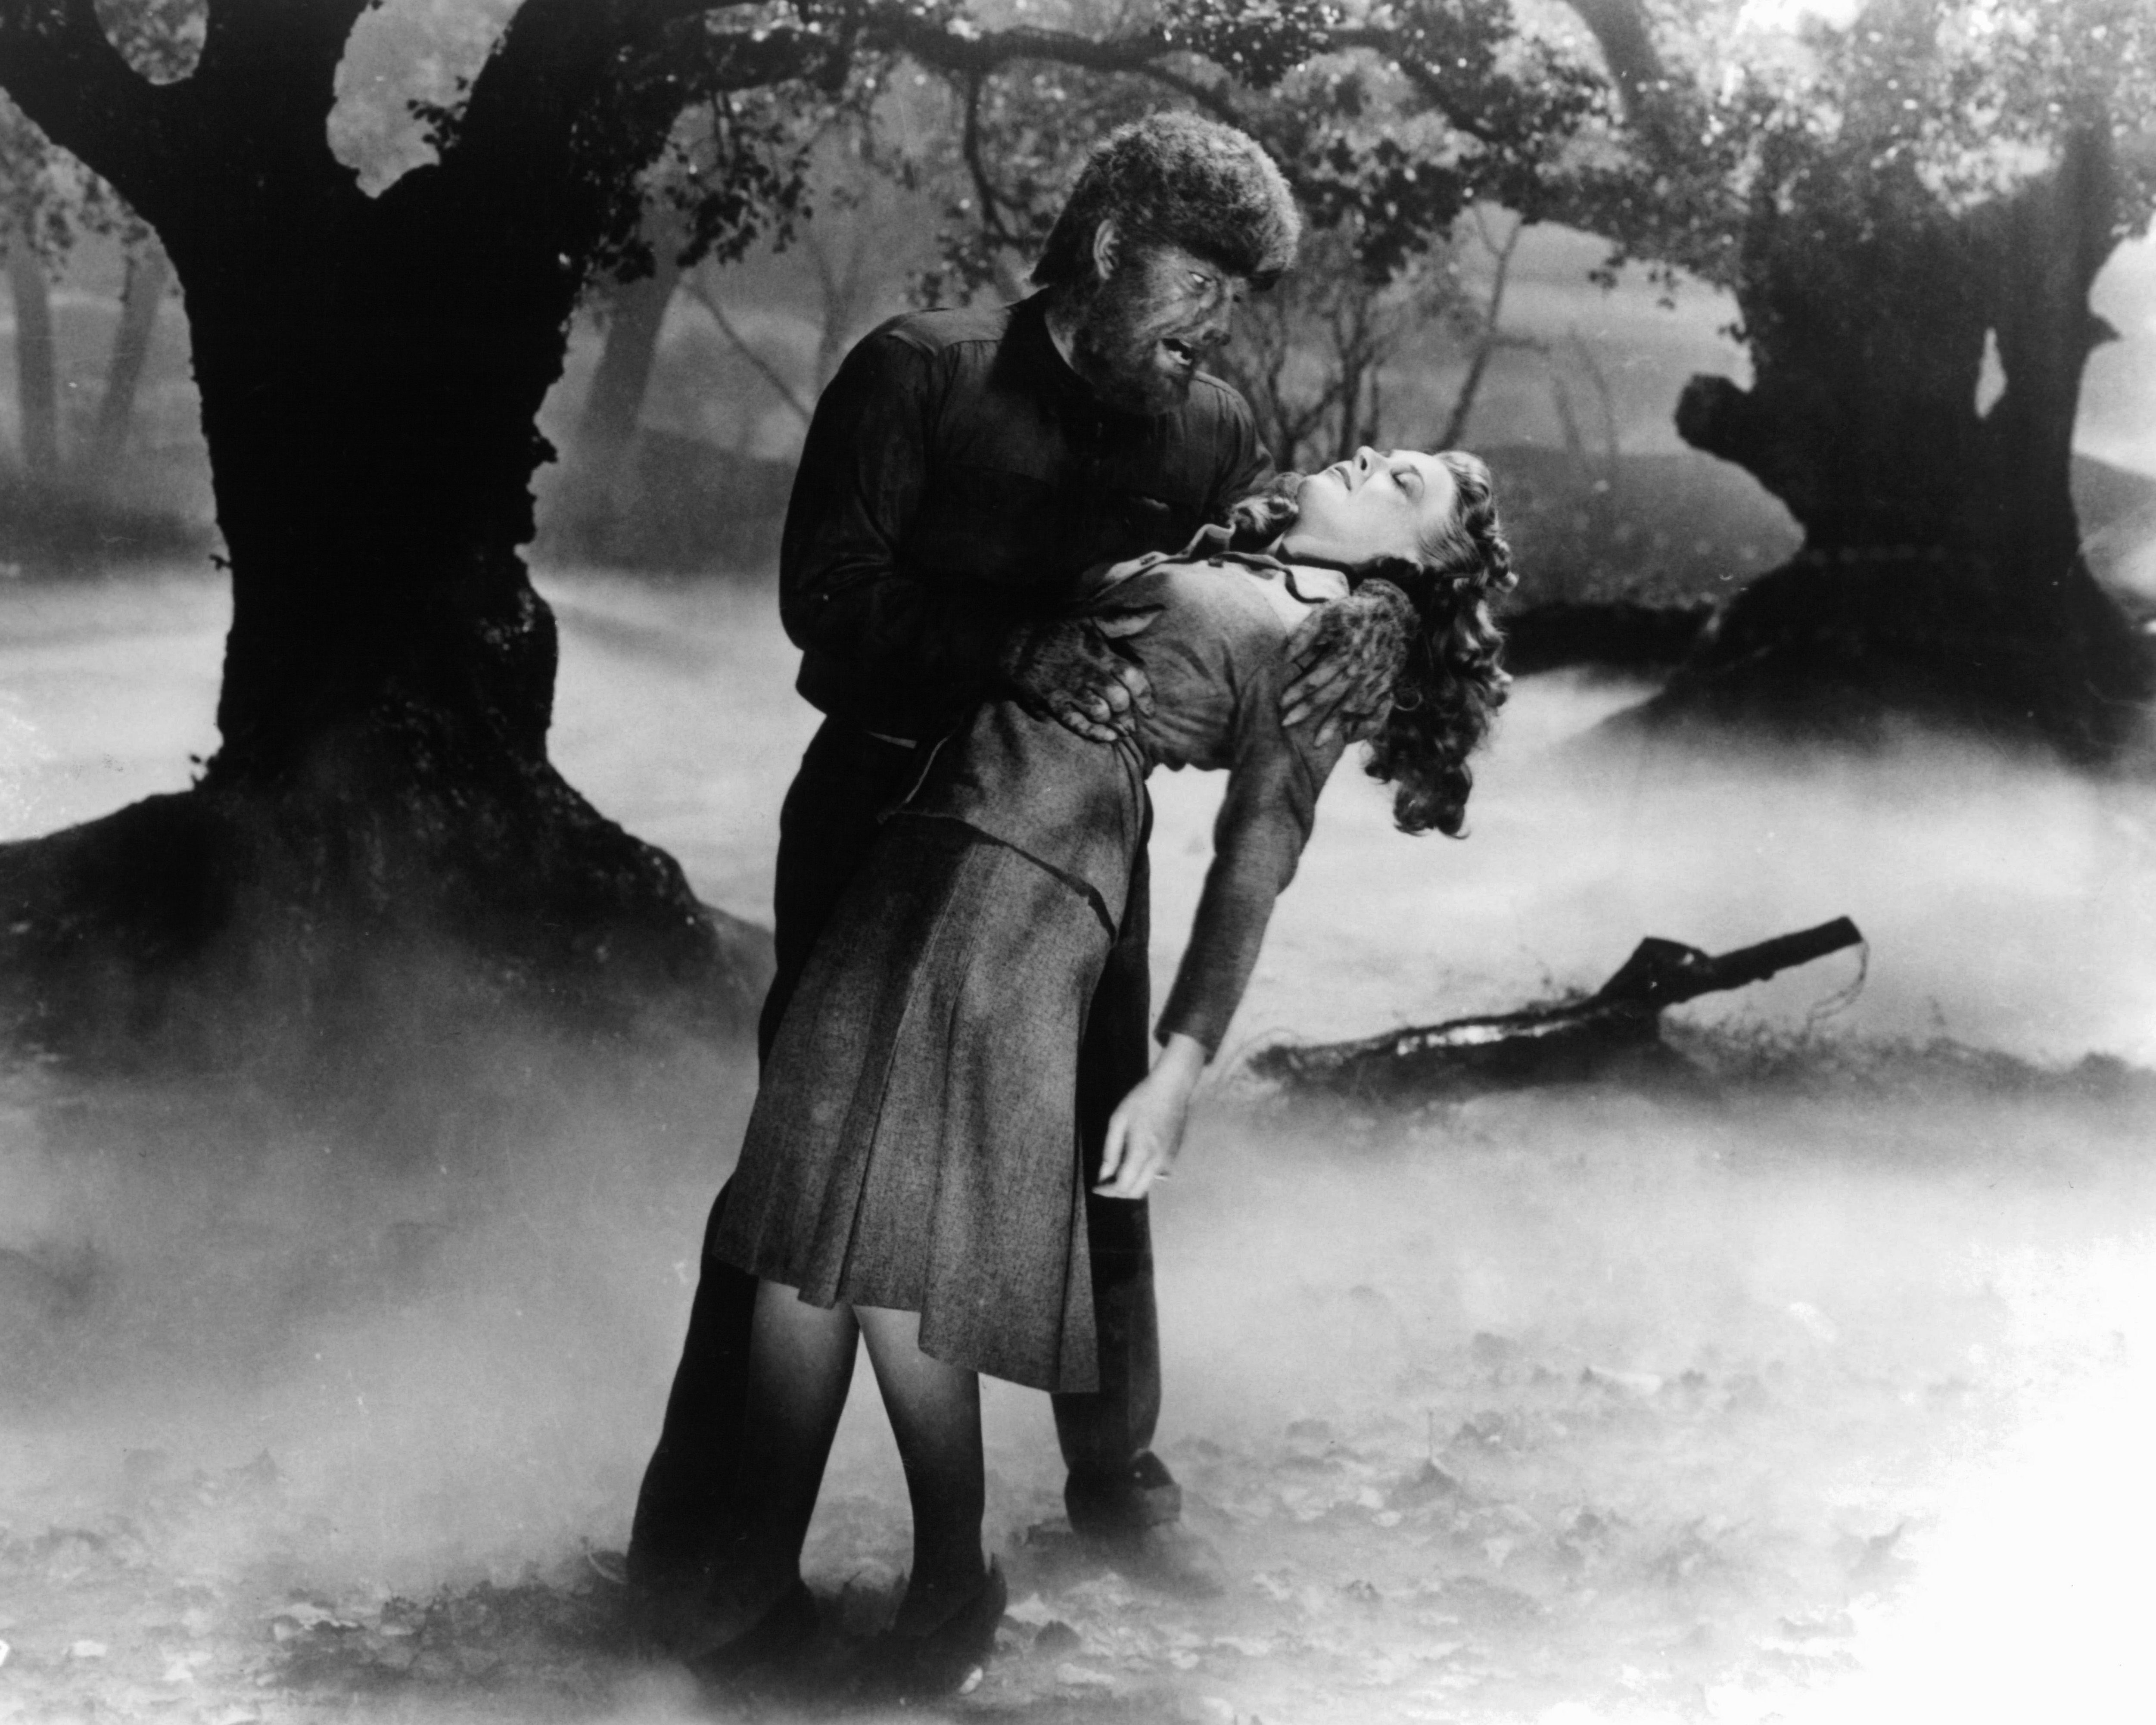 27 Best Classic Horror Movies of All Time from Psycho to The Exorcist